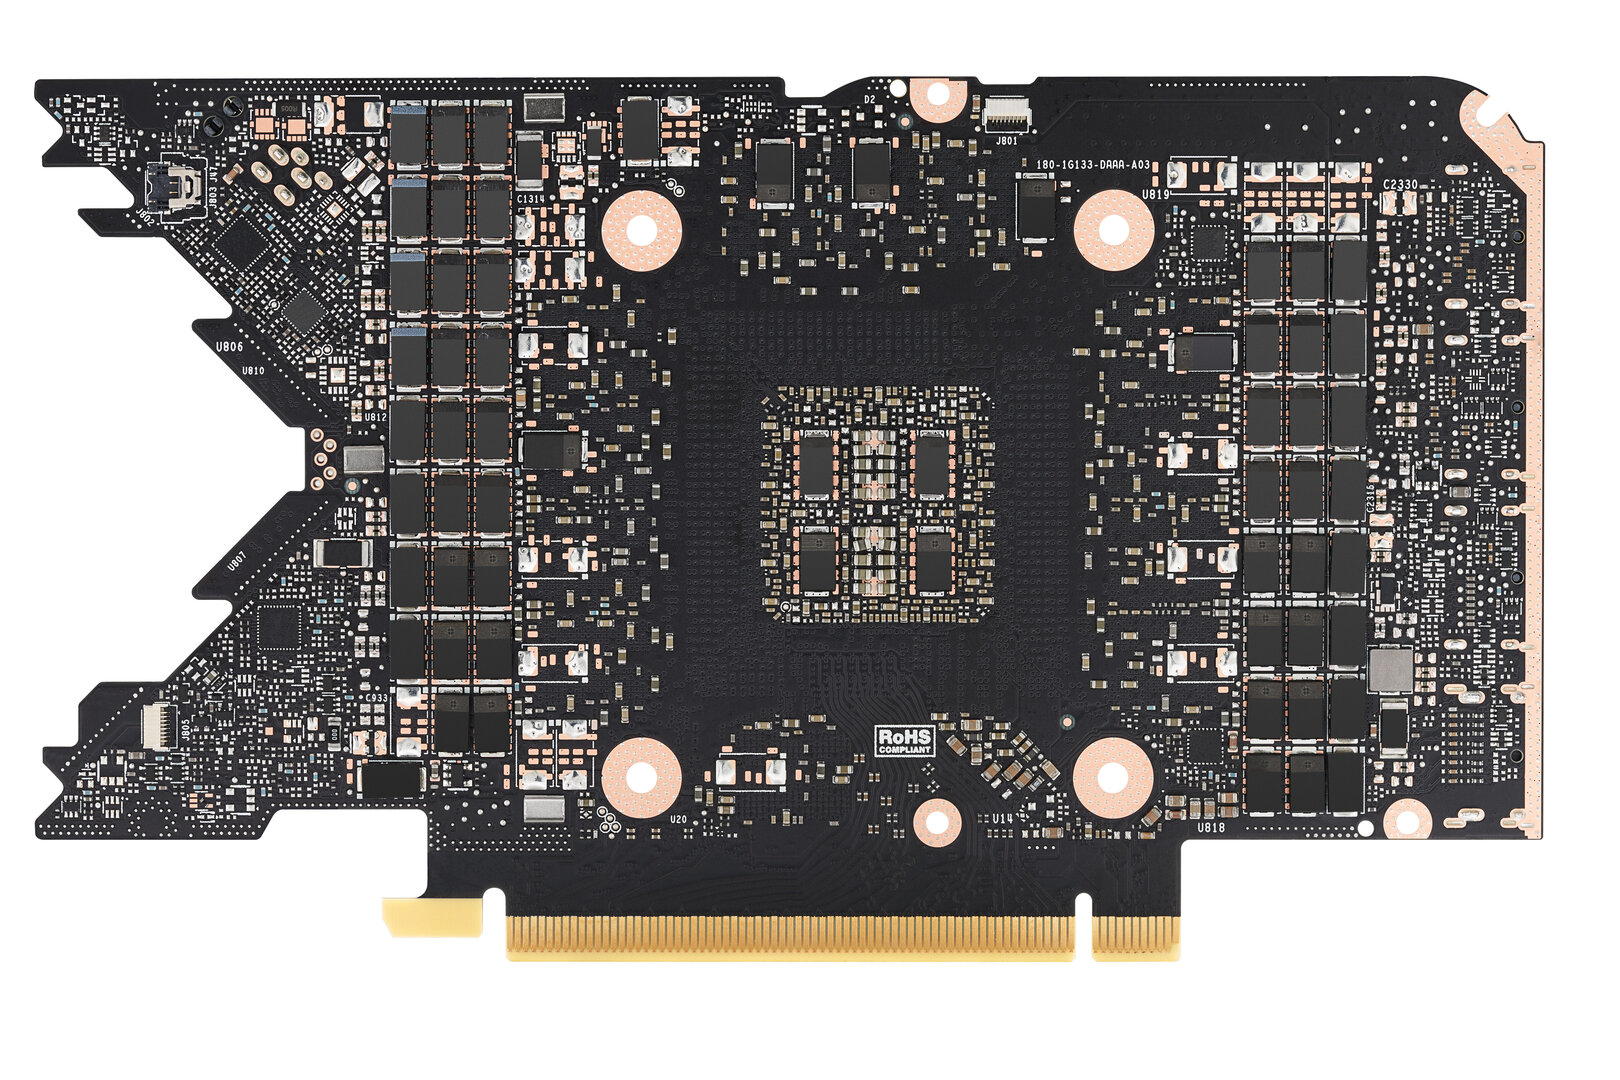 PCB der Nvidia GeForce RTX 3080 Ti Founders Edition